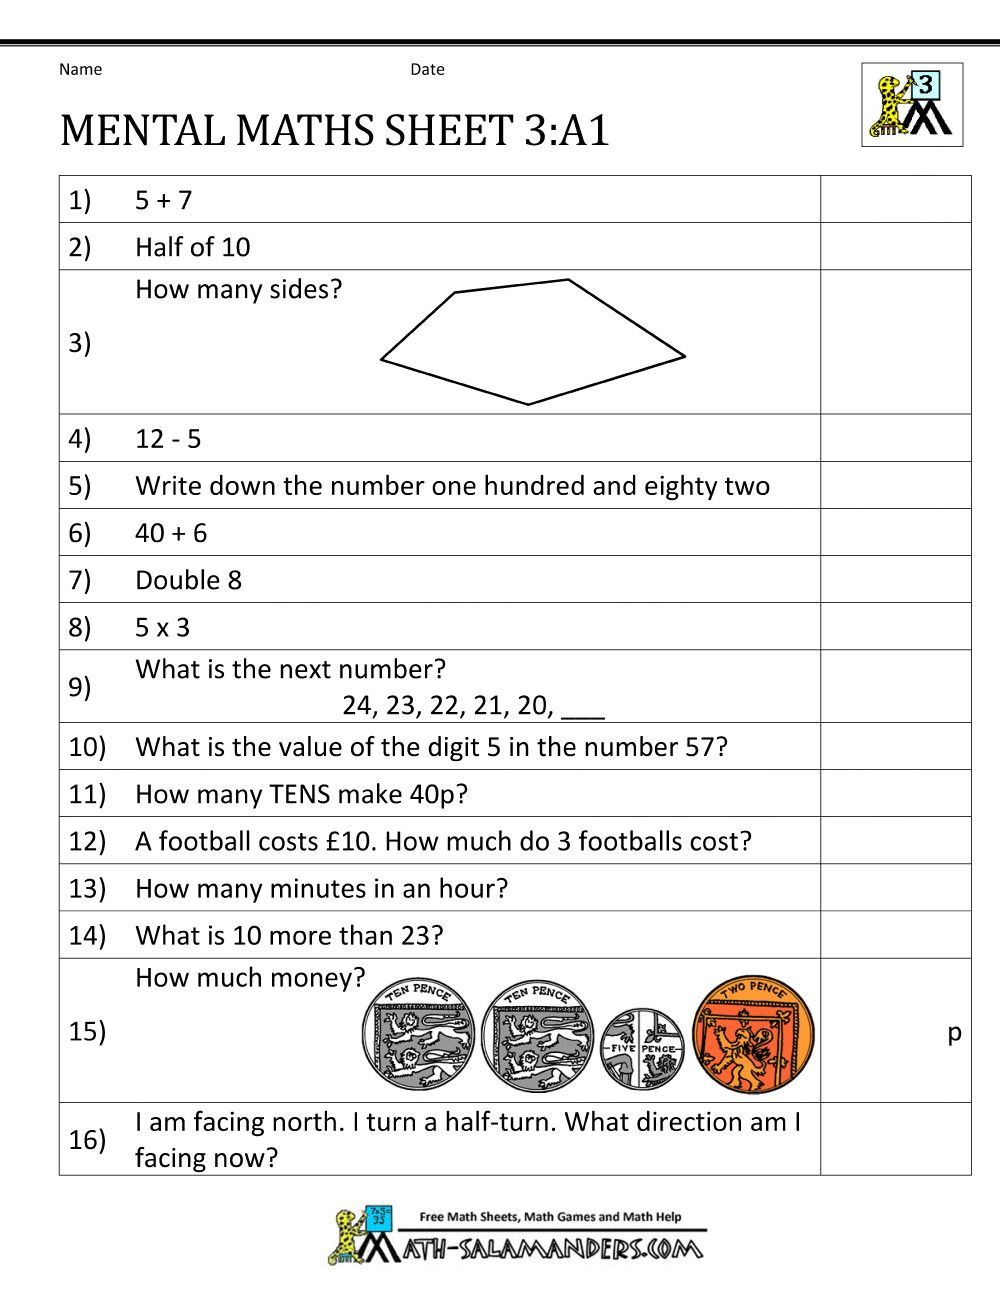 2 Maths Problems For Class 7 Pin On Cake Recipes Mental Maths Worksheets Mental Math Math Worksheets [ 1294 x 1000 Pixel ]